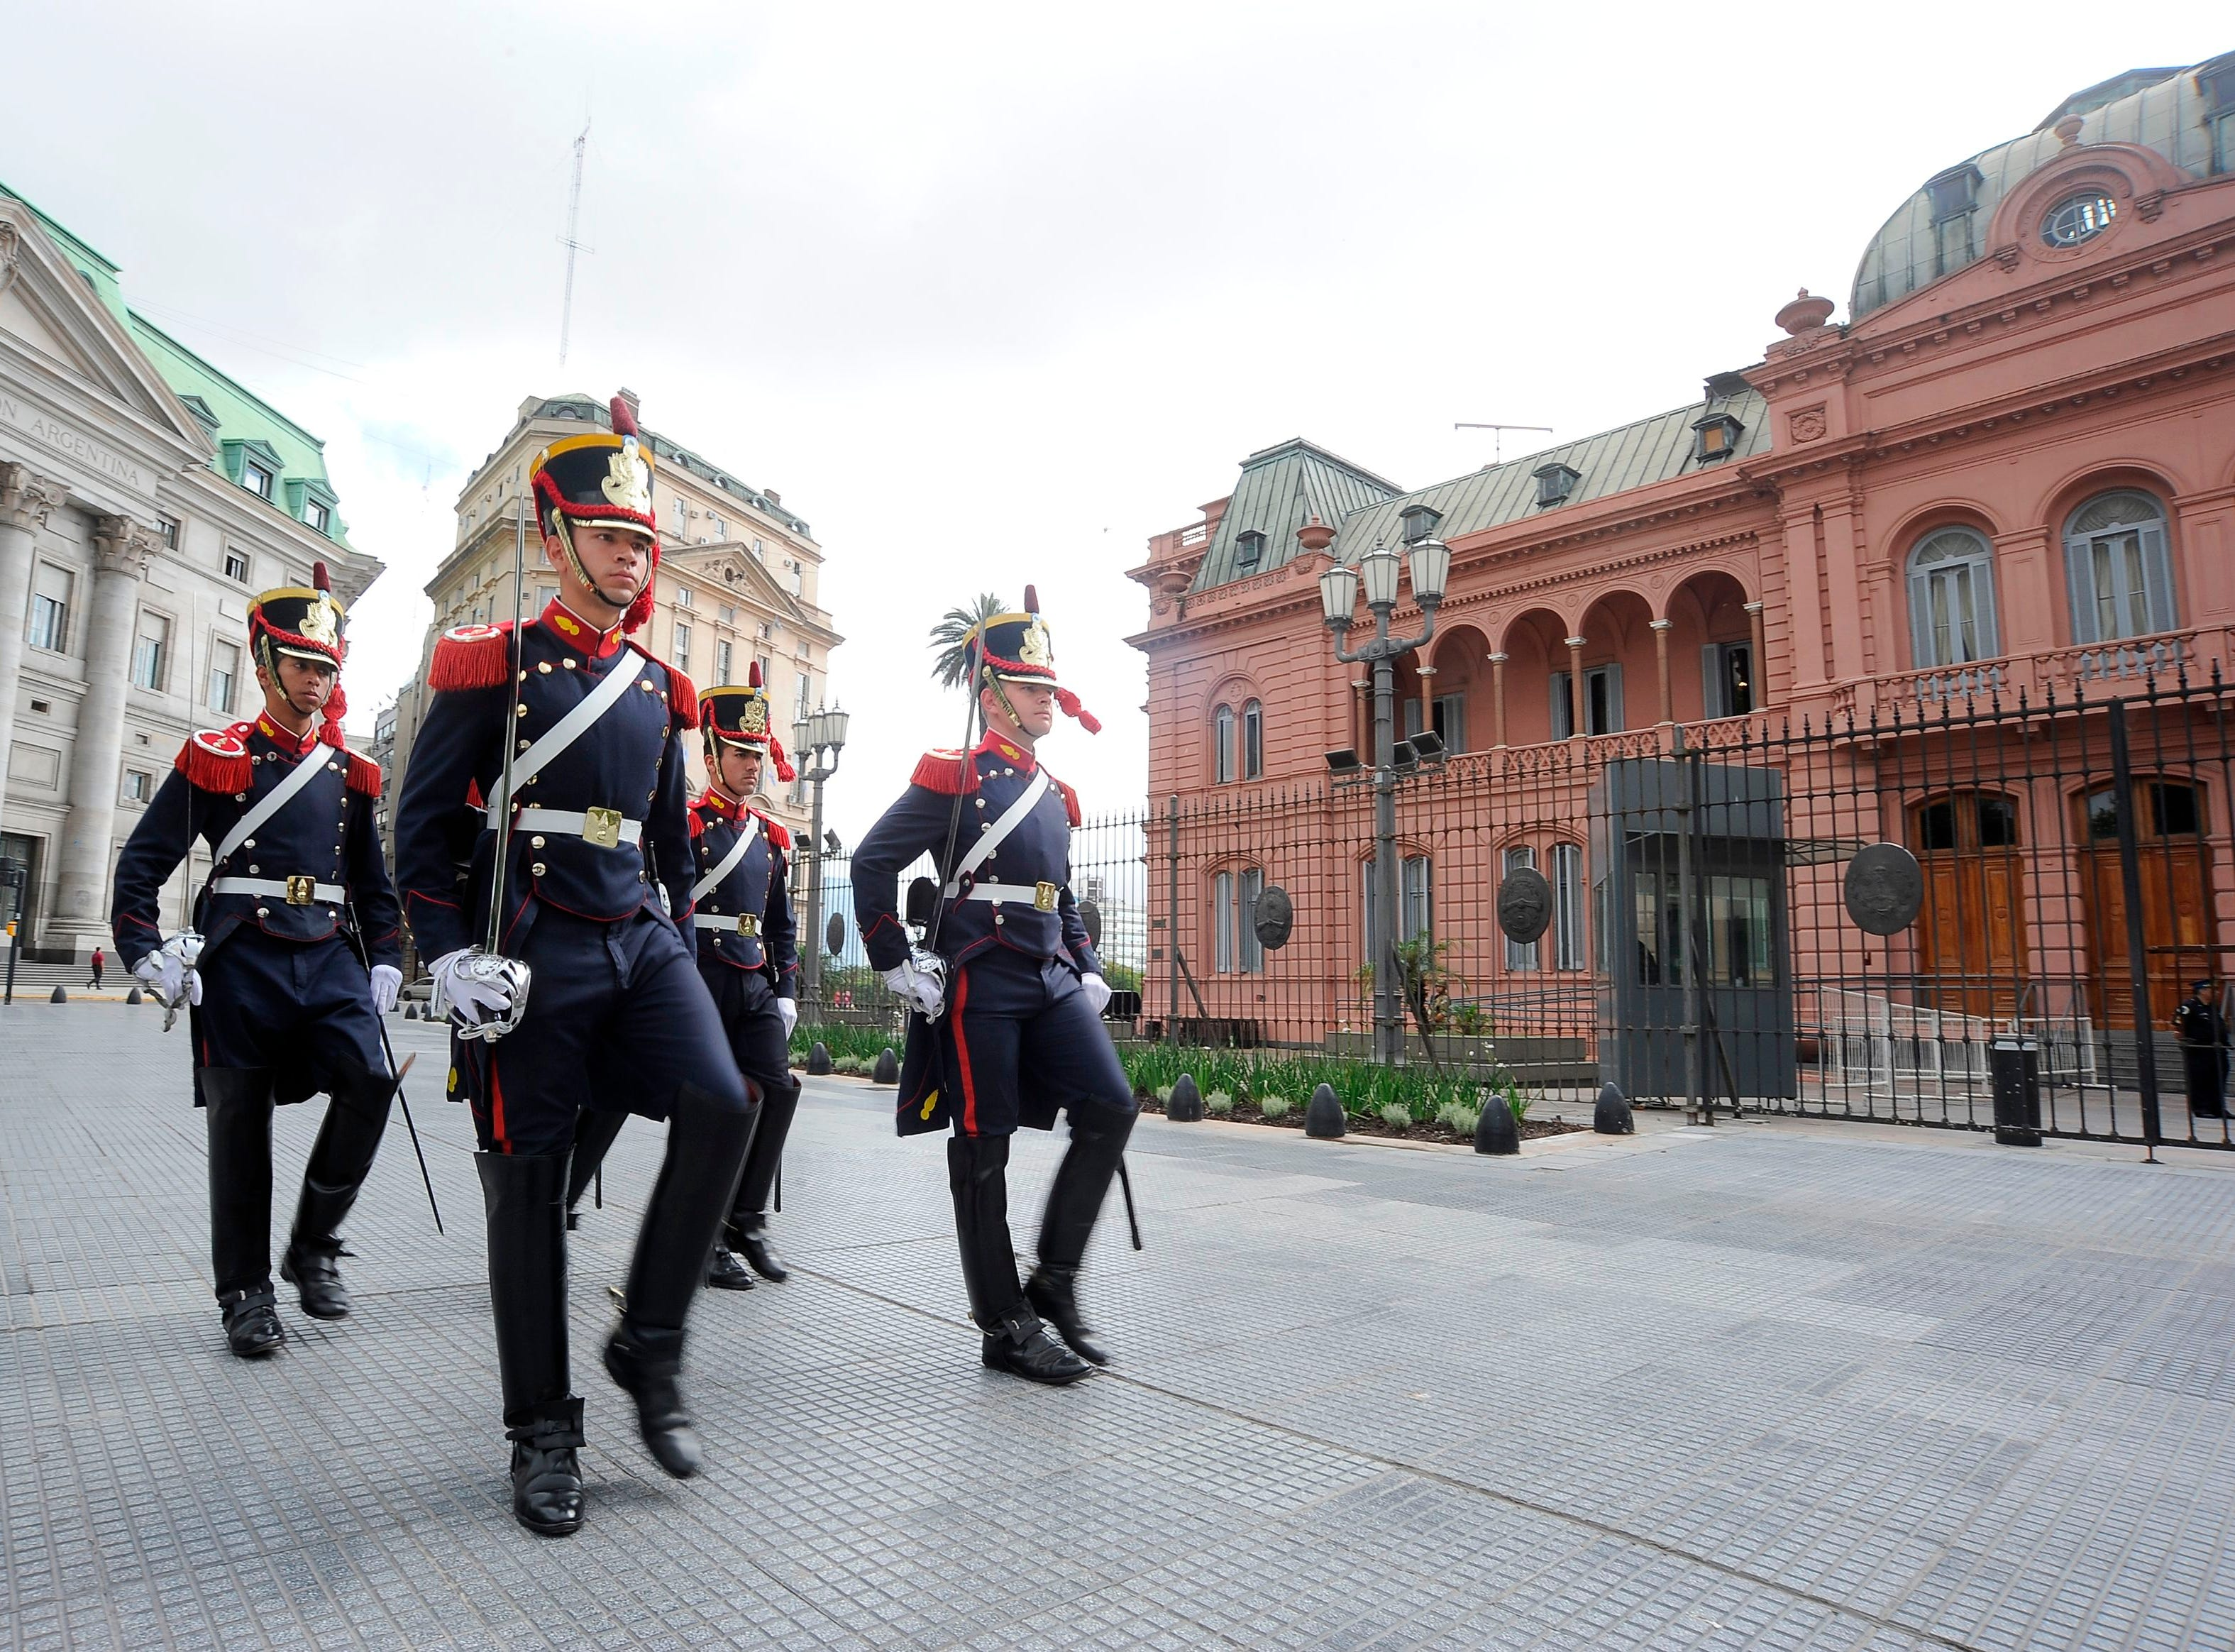 Soldiers from the elite Grenadier Regiment march outside of the Casa Rosada presidential palace in Buenos Aires on the eve of the G20 Leaders' Summit, on November 29, 2018. - Global leaders gather in the Argentine capital for a two-day G20 summit beginning on Friday likely to be dominated by simmering international tensions over trade. (Photo by JAVIER GONZALEZ TOLEDO / AFP)        (Photo credit should read JAVIER GONZALEZ TOLEDO/AFP/Getty Images)